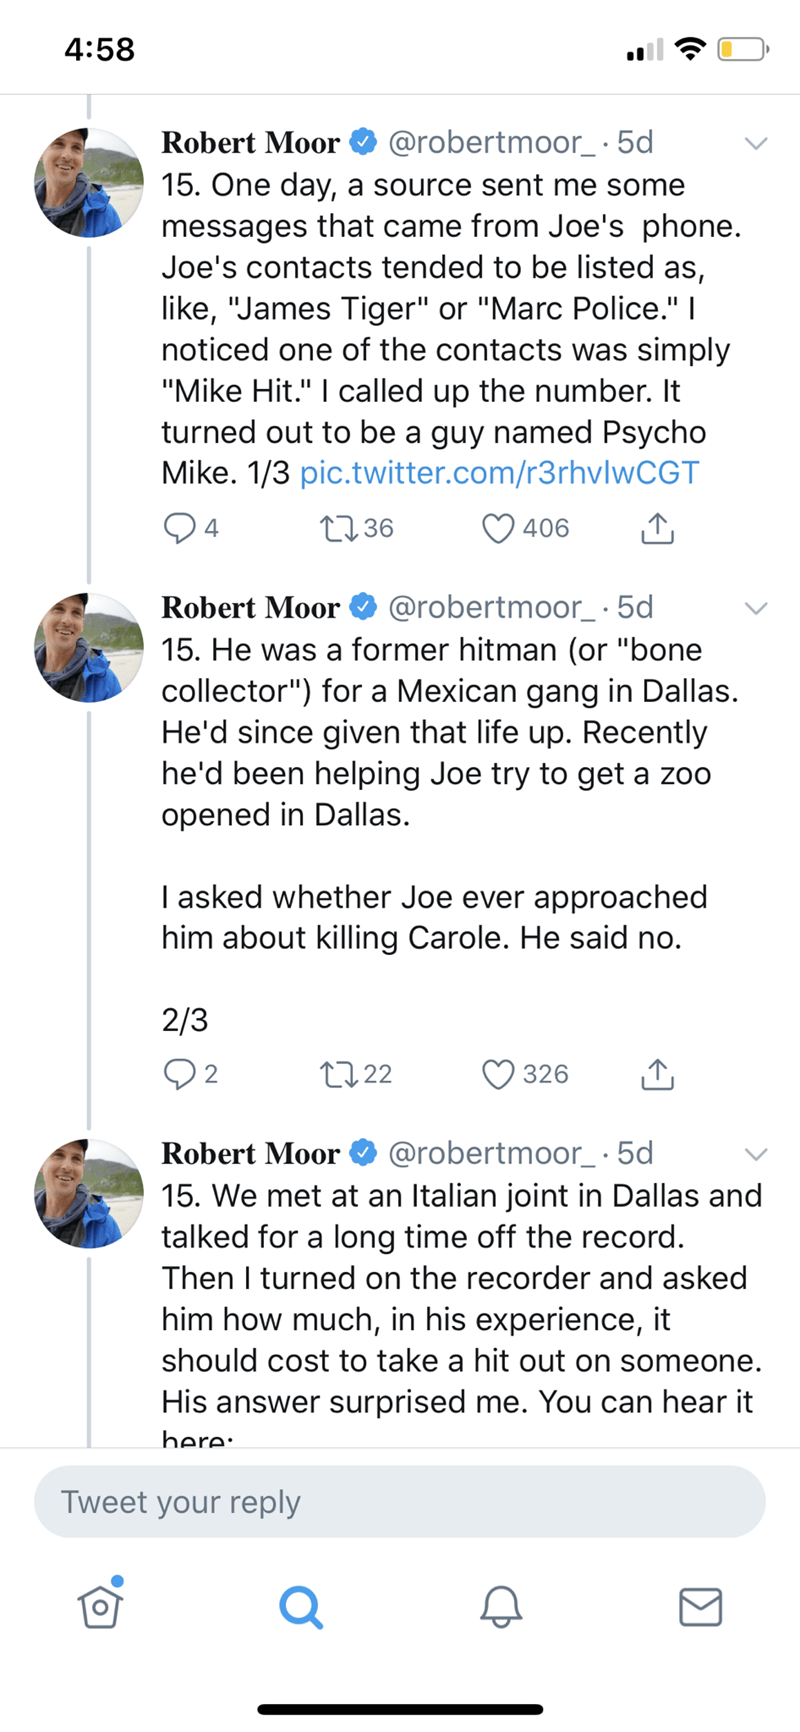 """Text - 4:58 Robert Moor @robertmoor_·5d 15. One day, a source sent me some messages that came from Joe's phone. Joe's contacts tended to be listed as, like, """"James Tiger"""" or """"Marc Police."""" I noticed one of the contacts was simply """"Mike Hit."""" I called up the number. It turned out to be a guy named Psycho Mike. 1/3 pic.twitter.com/r3rhvlwCGT 04 2736 406 Robert Moor @robertmoor_·5d 15. He was a former hitman (or """"bone collector"""") for a Mexican gang in Dallas. He'd since given that life up. Recently"""